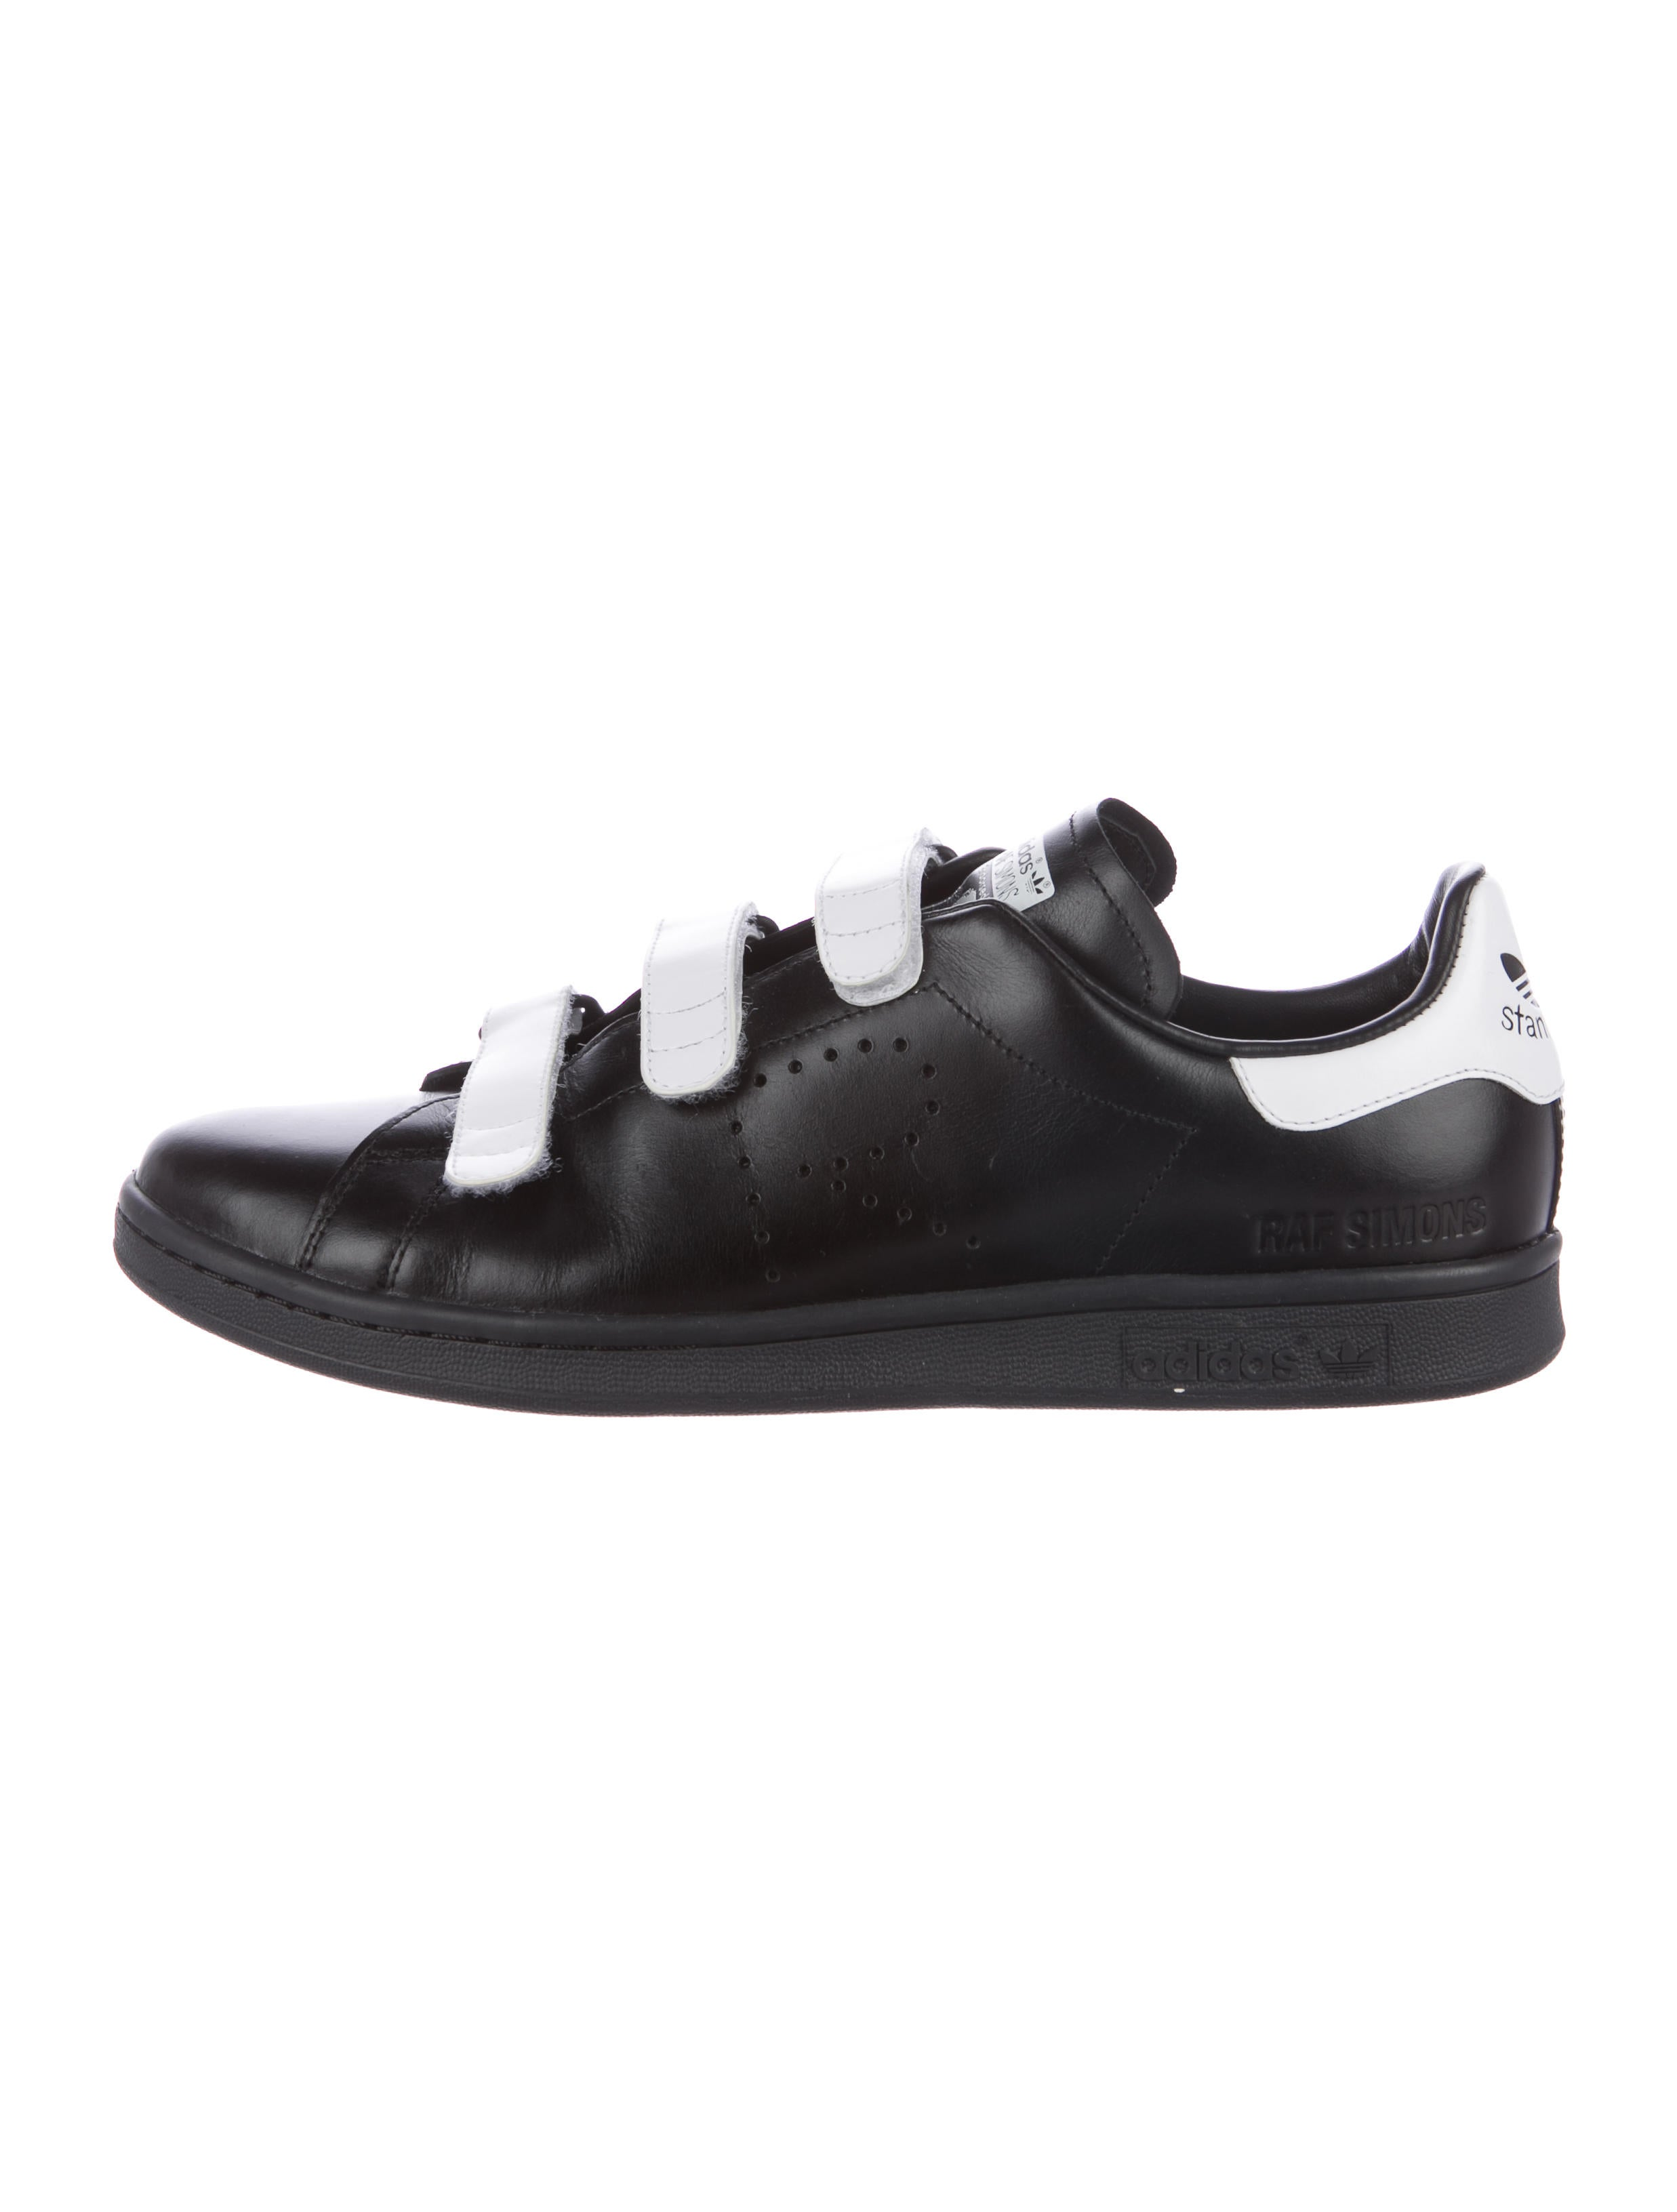 raf simons x adidas stan smith sneakers shoes. Black Bedroom Furniture Sets. Home Design Ideas